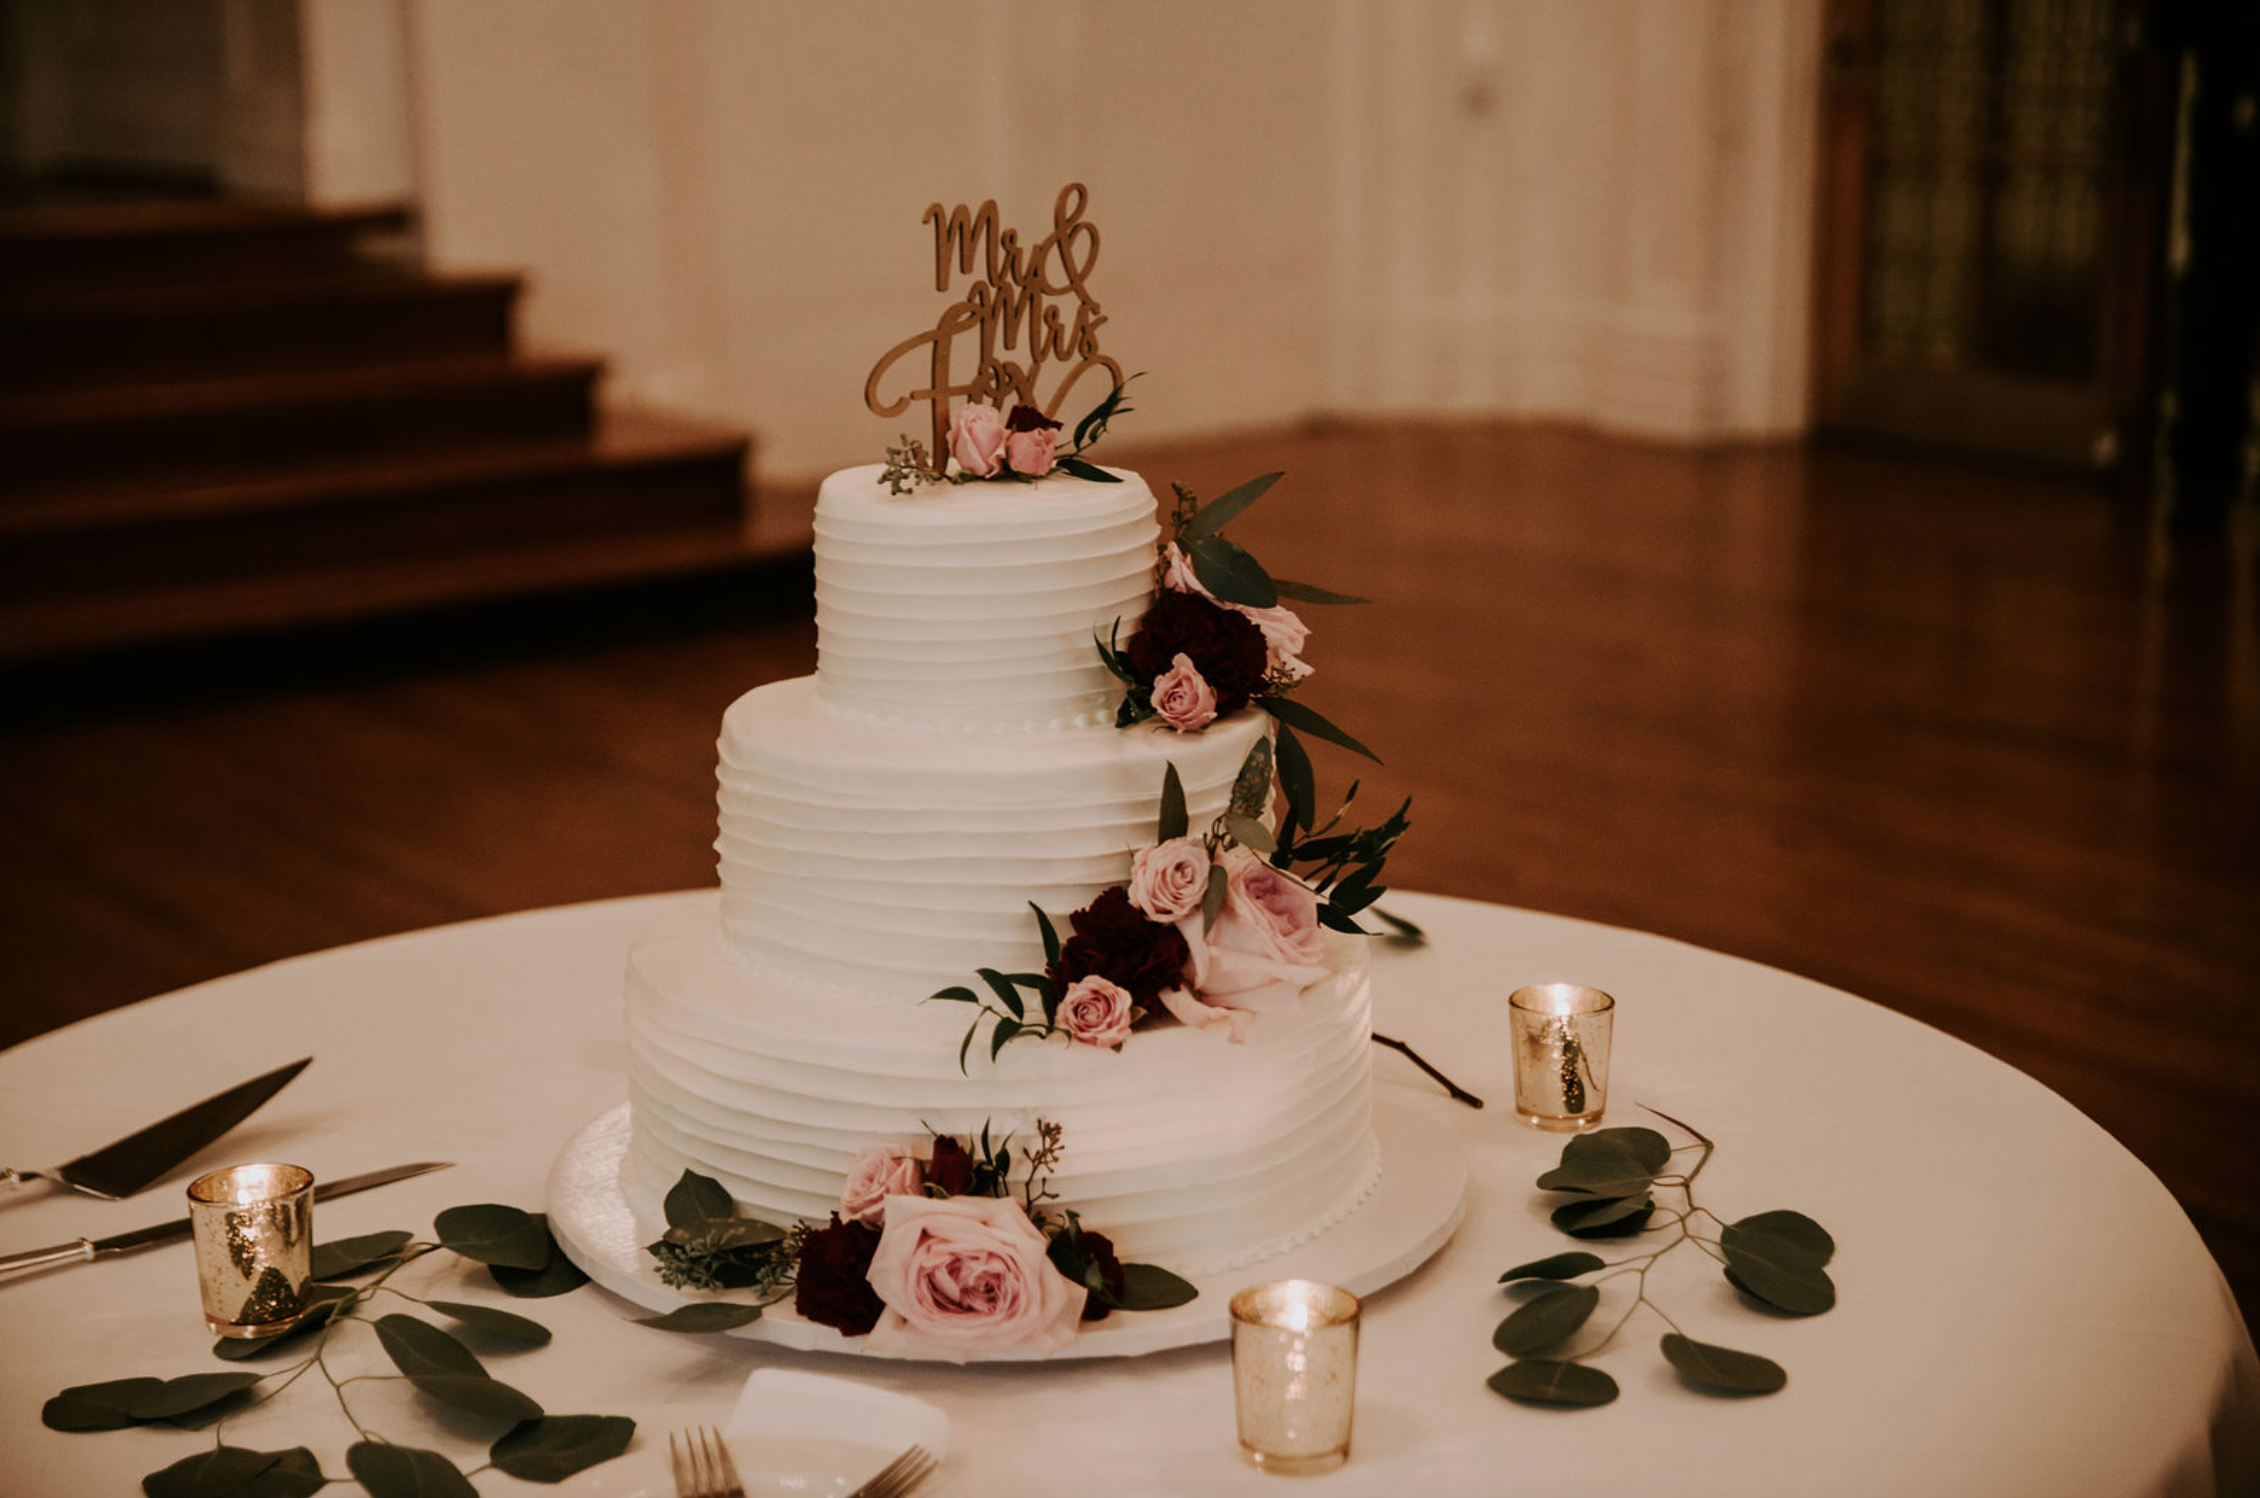 Wedding cake with flowers and gold wedding topper at Buffalo, NY wedding planned by Exhale Events. Find more wedding inspiration at exhale-events.com!